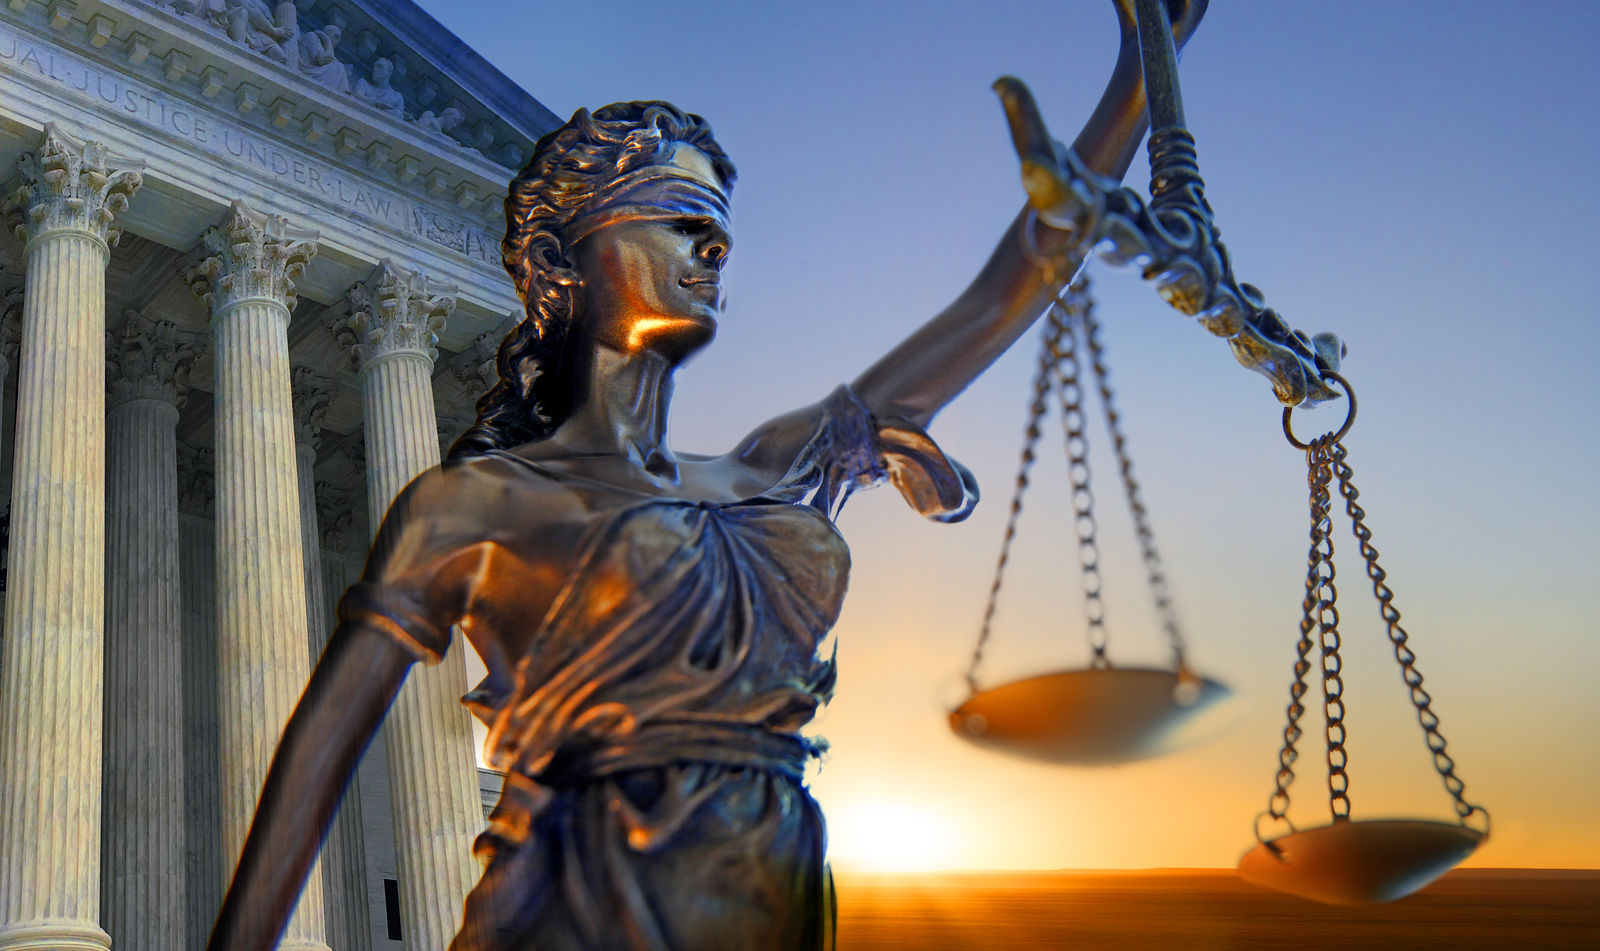 A statue of the blindfolded lady justice in front of the United States Supreme Court building as the sun rises in the distance symbolizing the dawning of a new era. (Getty Images)